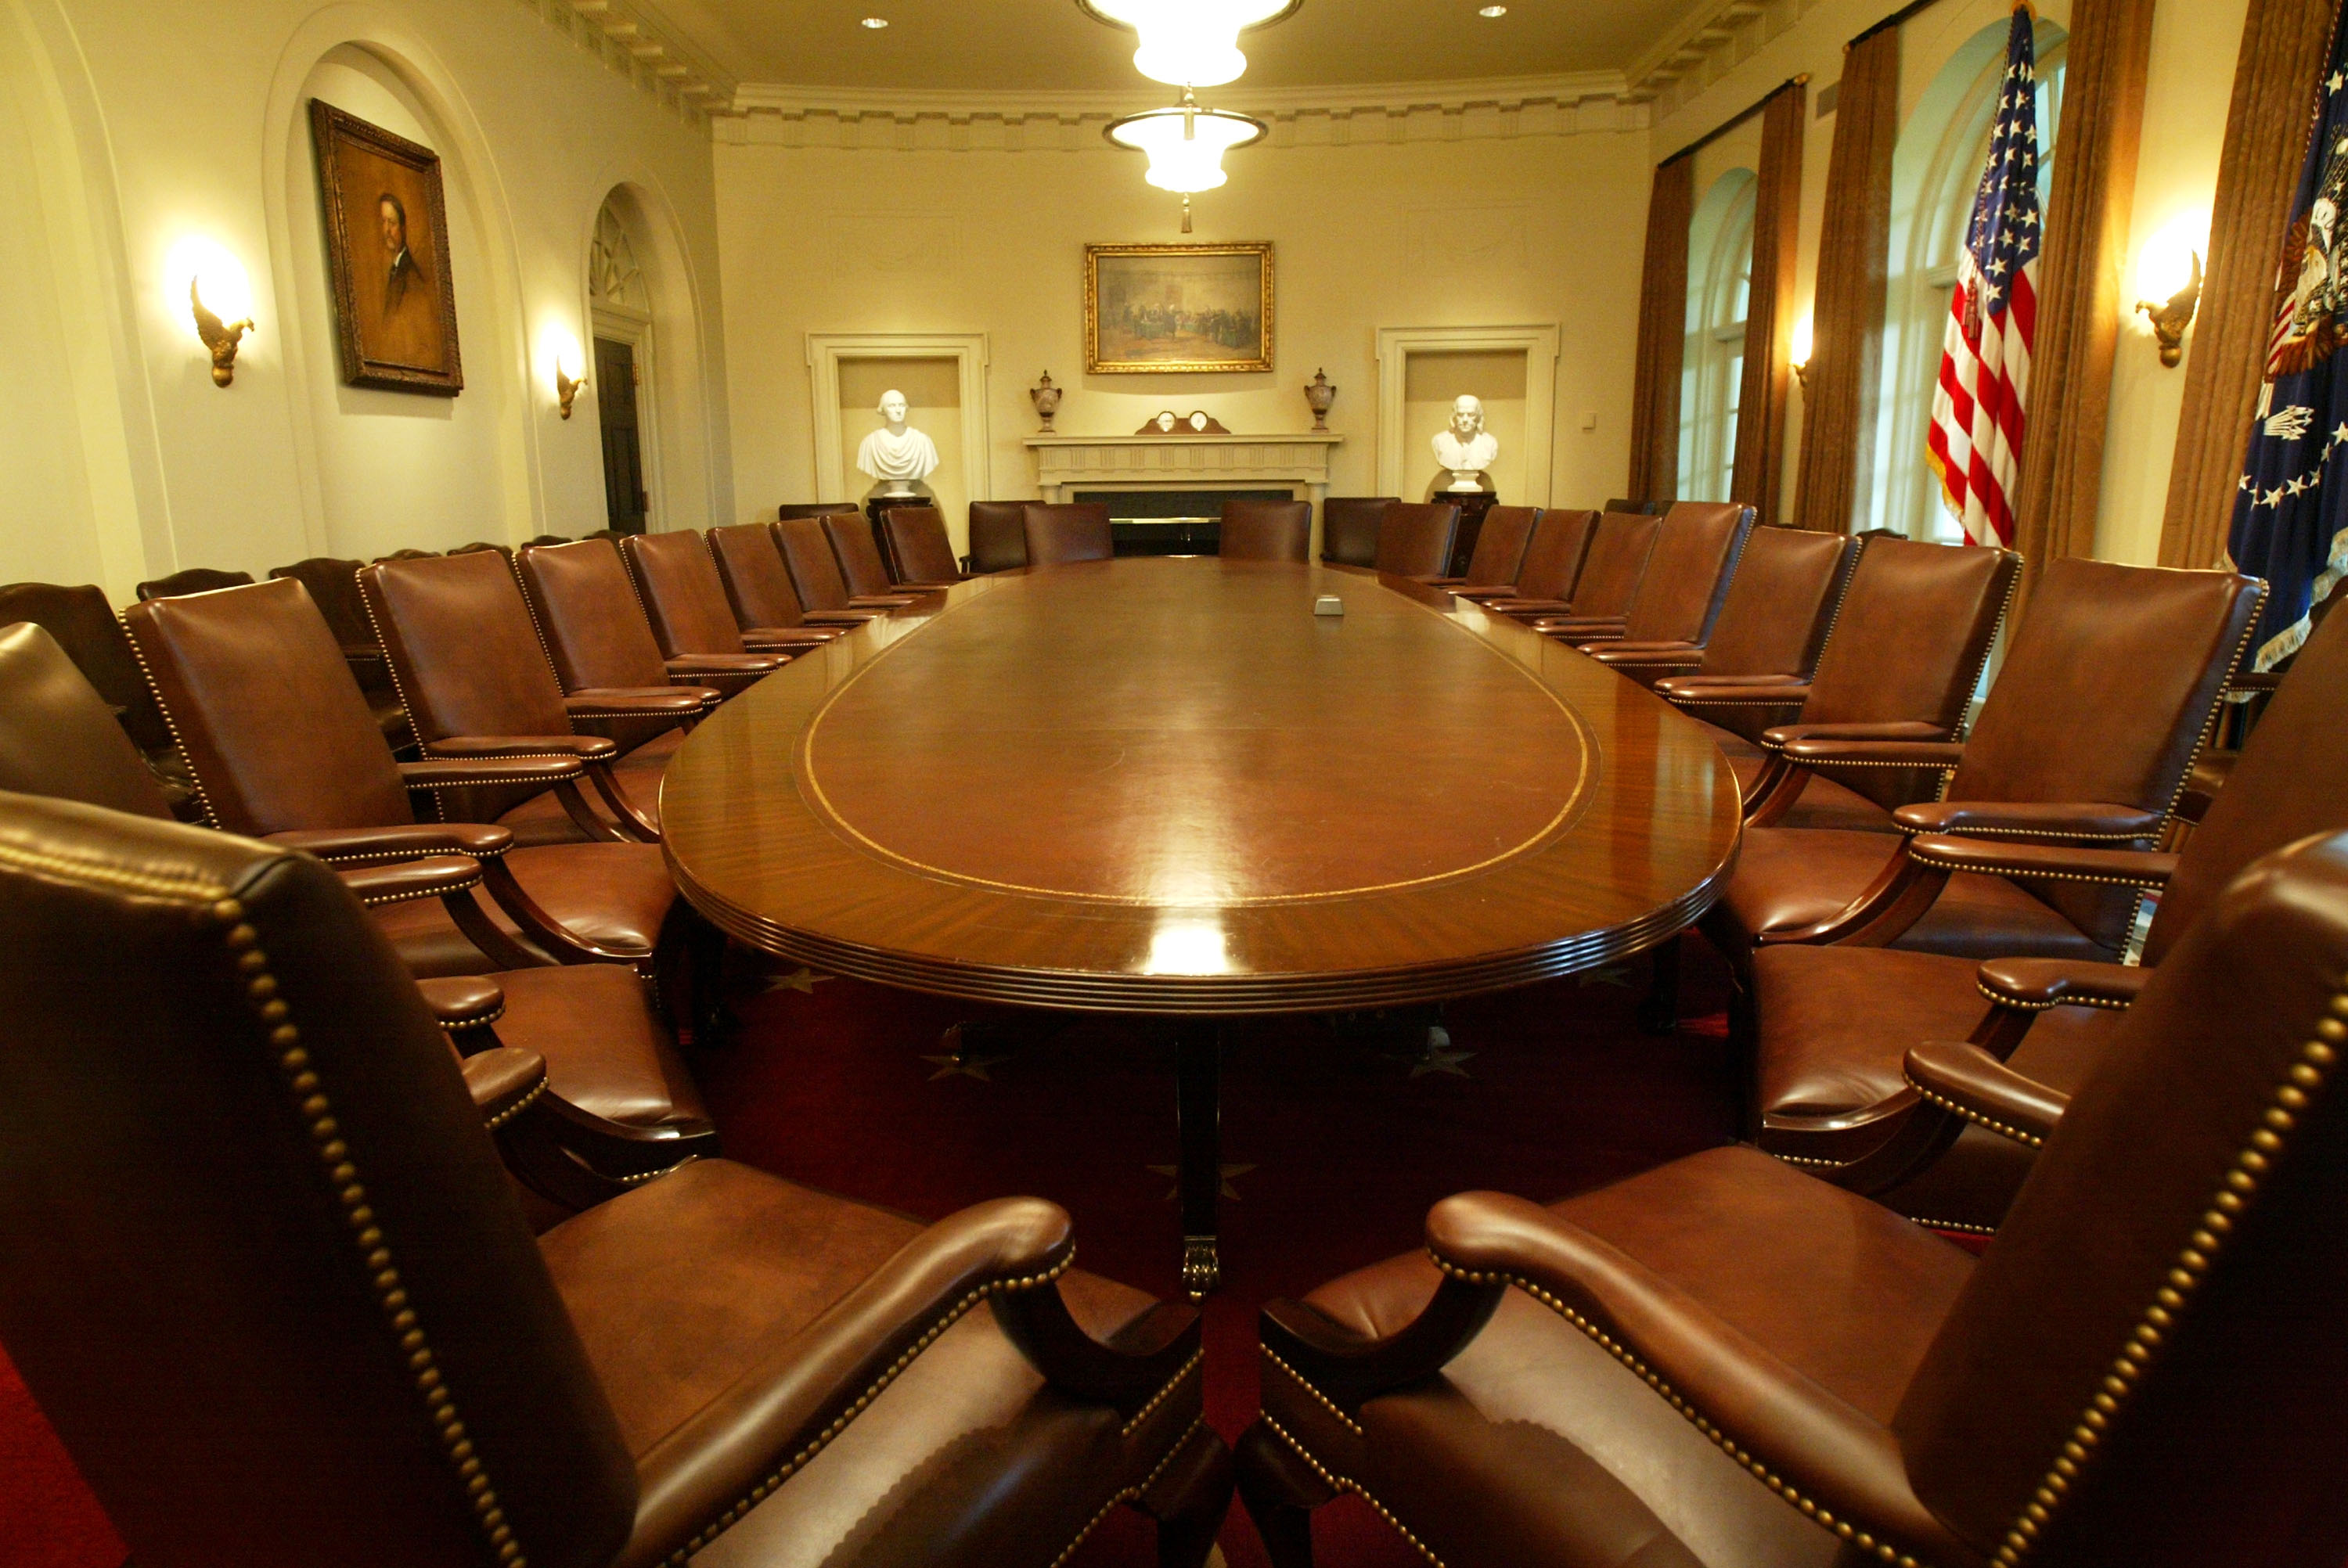 White House Cabinet Room Refurbished After 22 Years